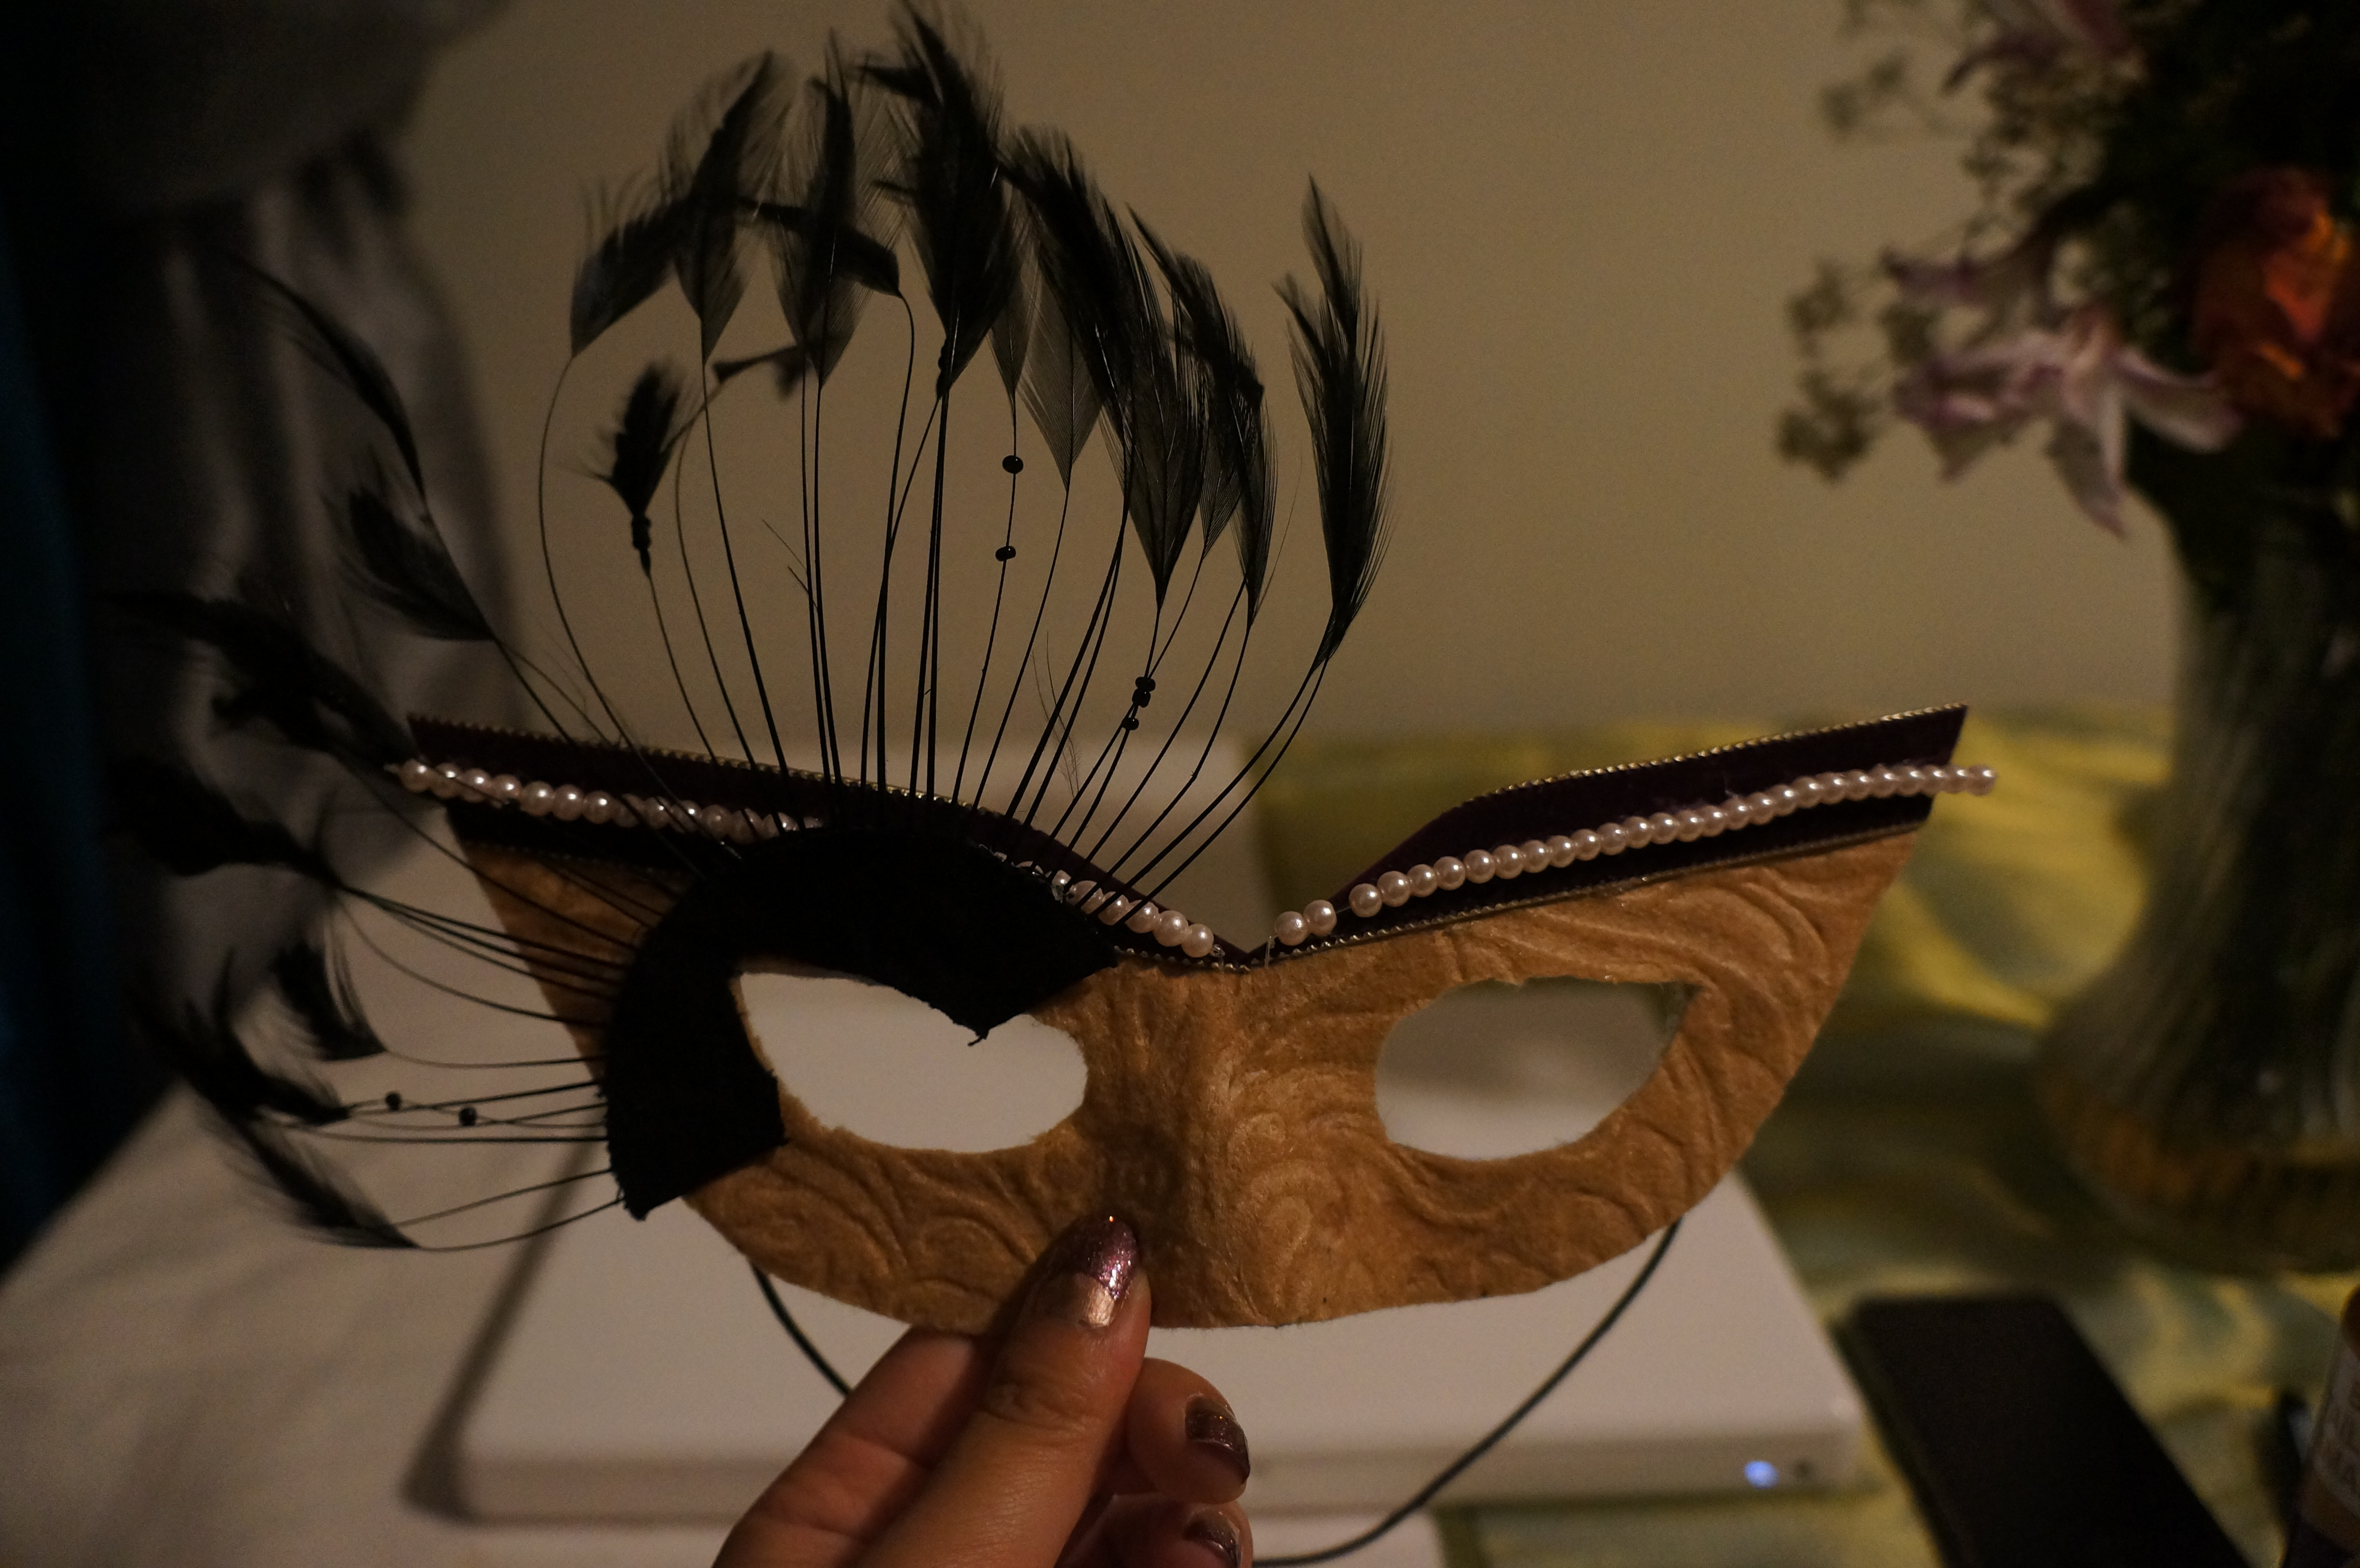 Best ideas about DIY Masquerade Mask . Save or Pin DIY Masquerade Mask Now.